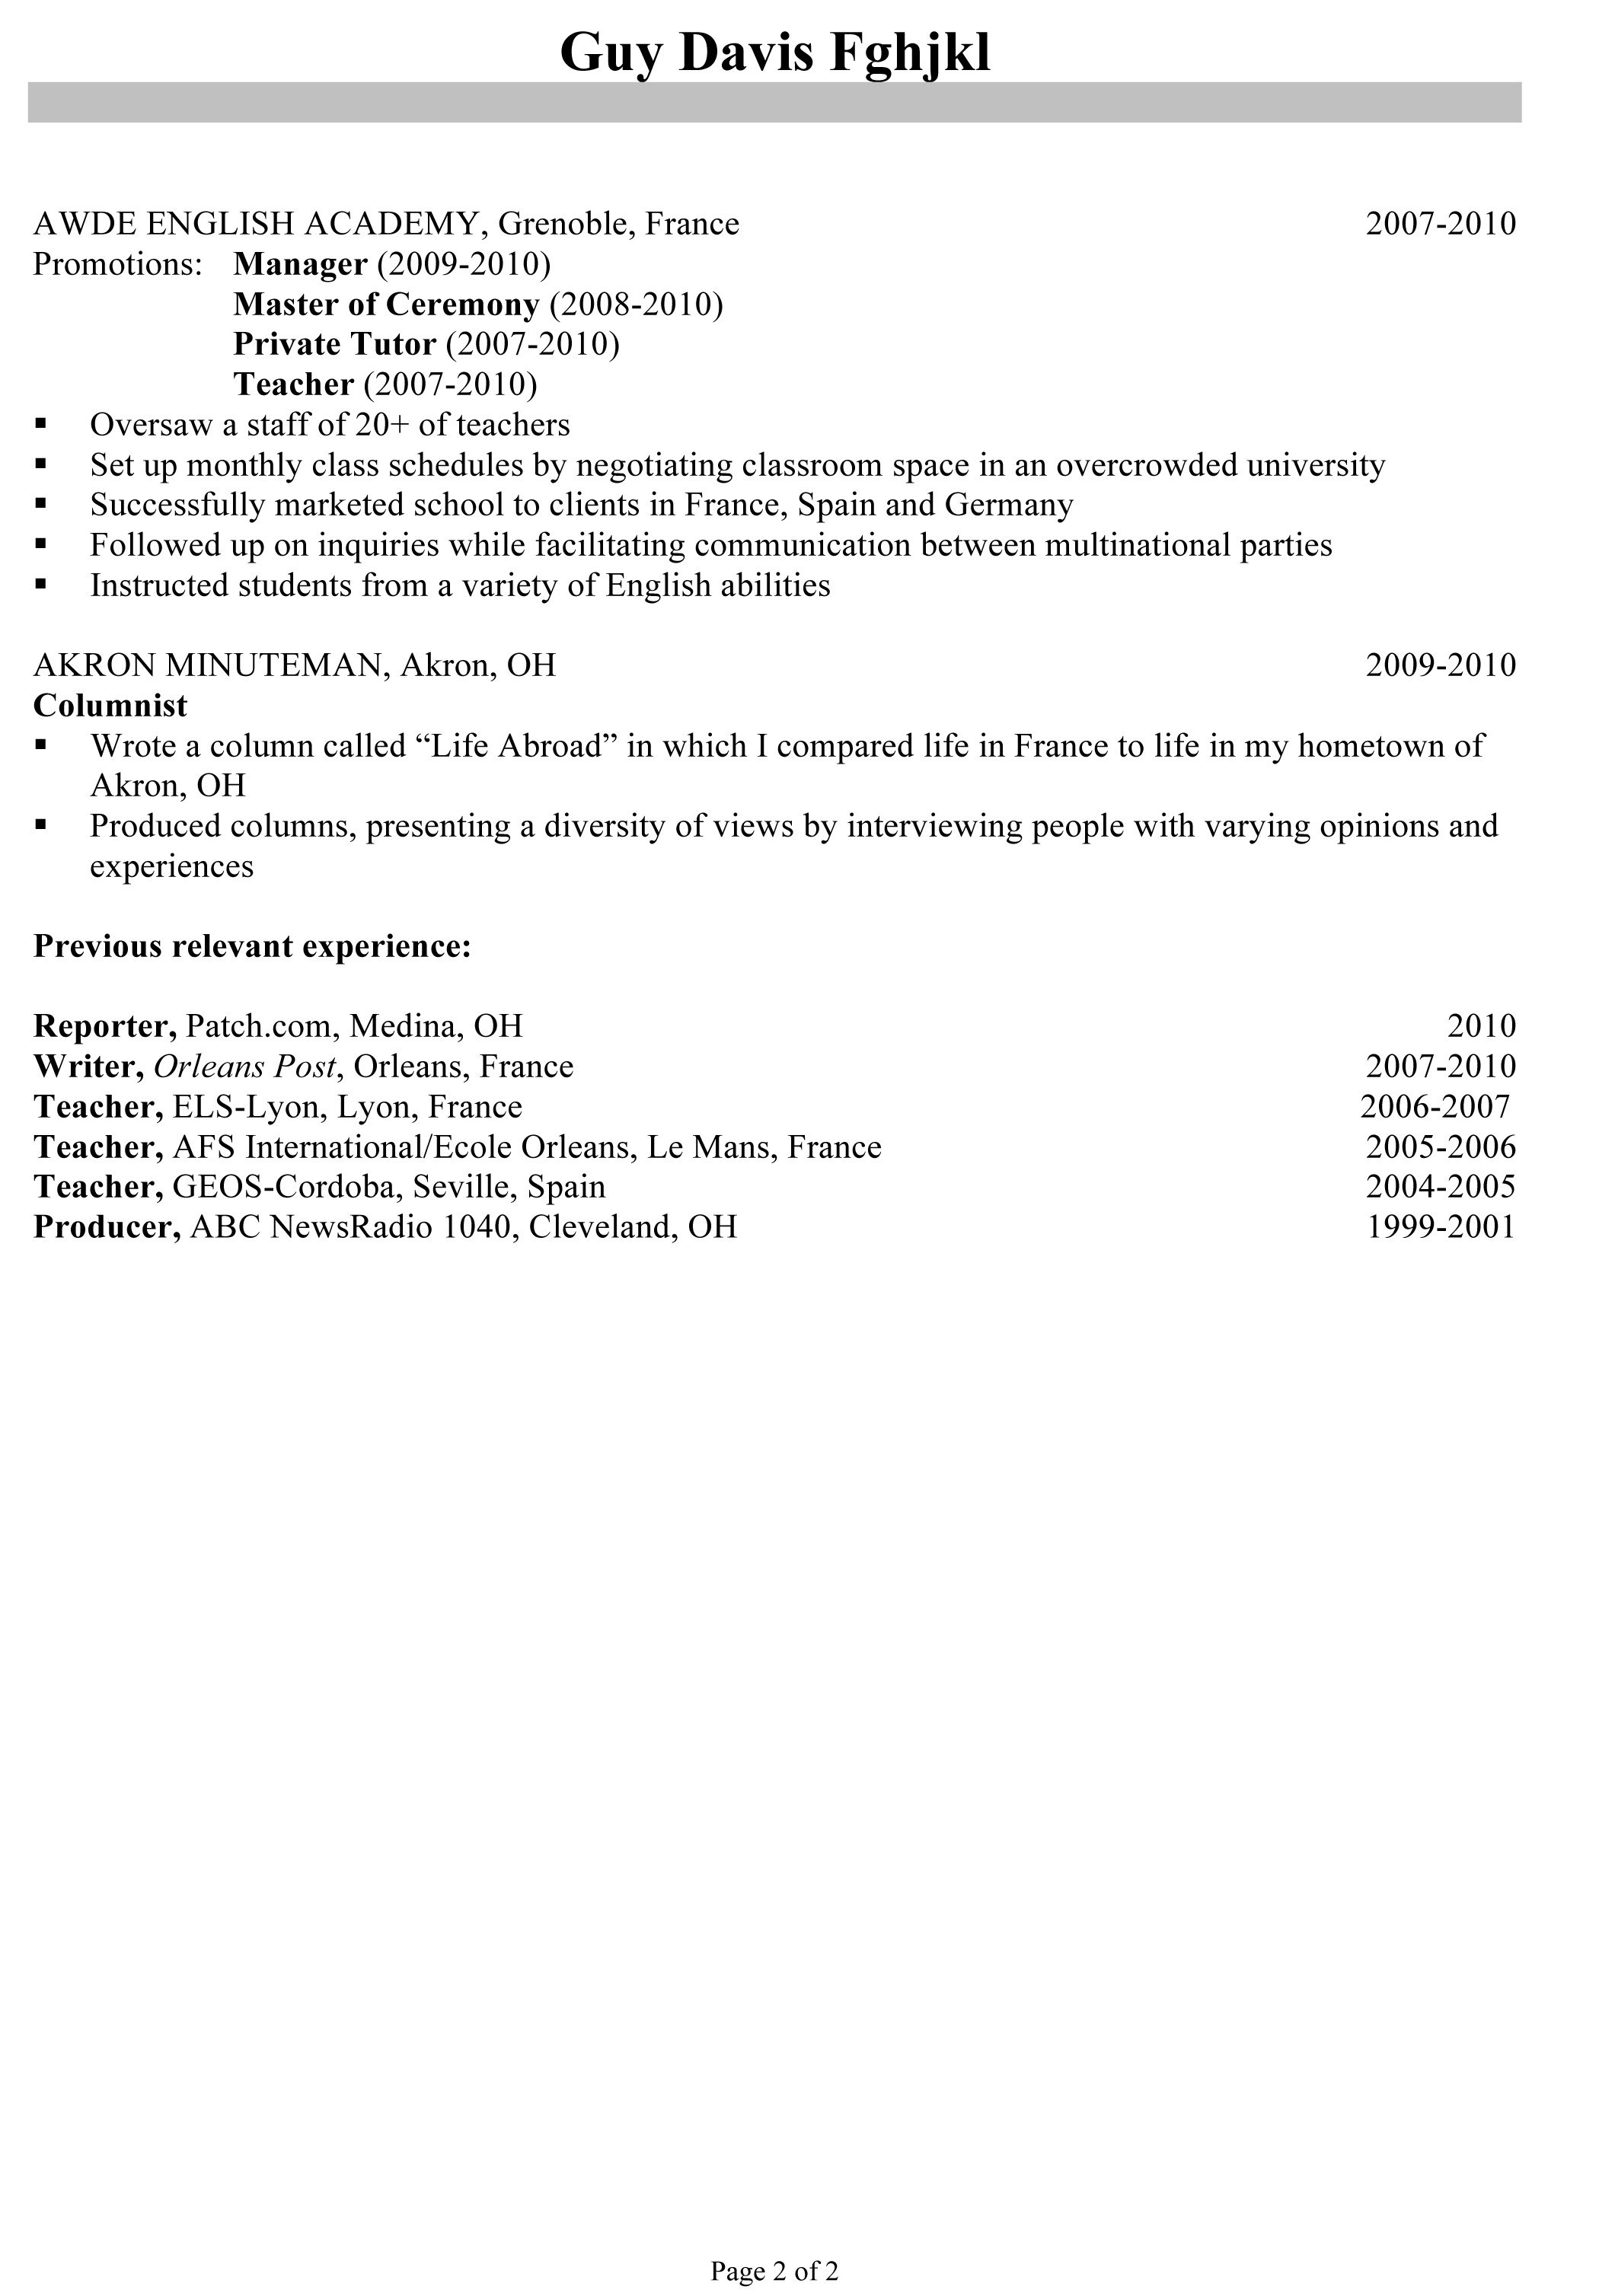 Pharmacy Technician Job Description for Resume - 49 Pharmacy Technician Resume Skills